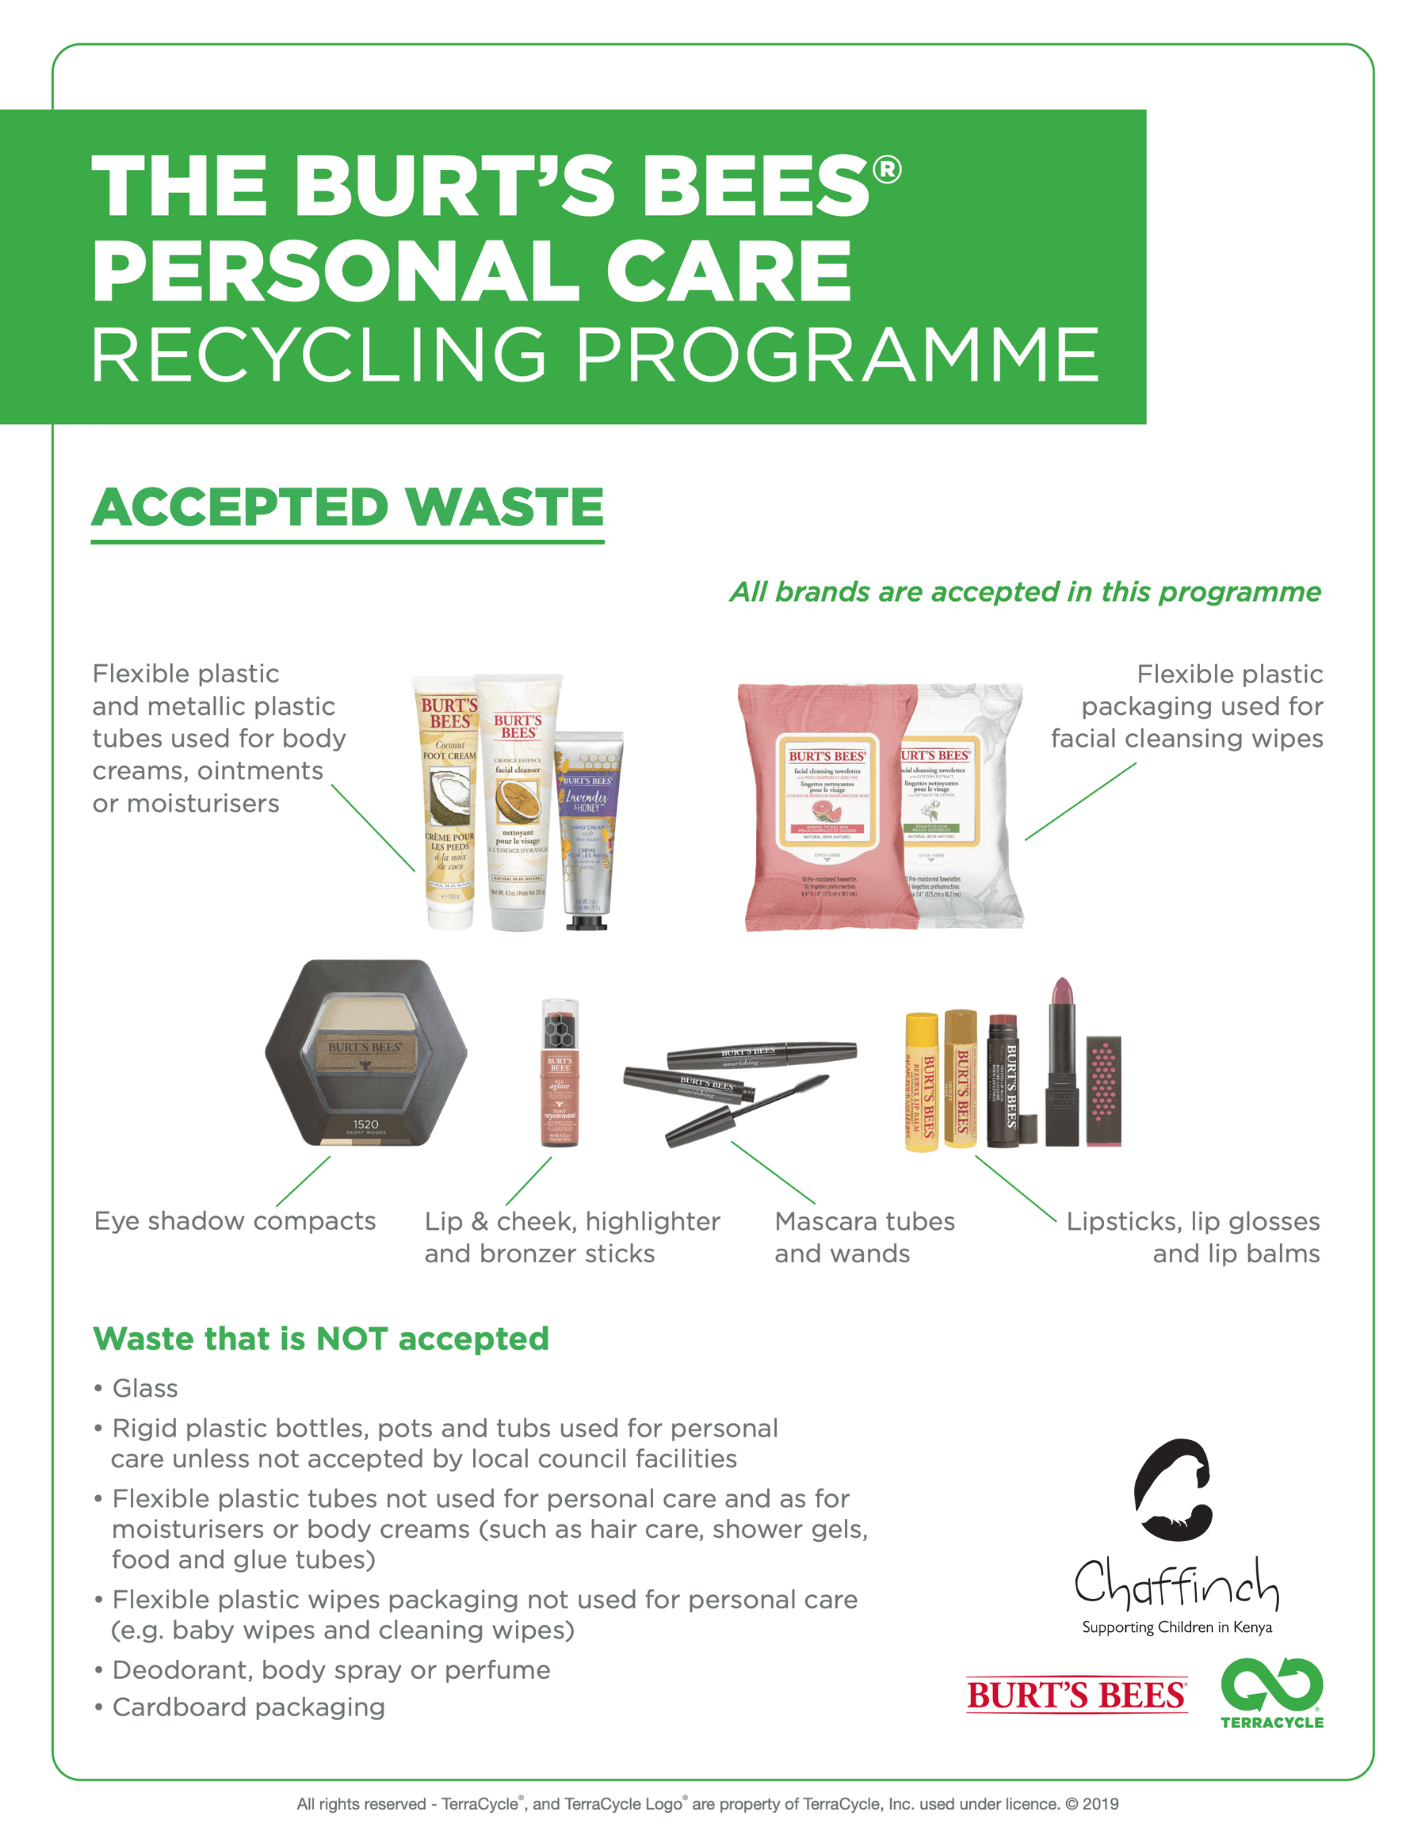 Items accepted: flexible tubes from moisturisers, body creams etc; mascara tubes and wands; lipstick, lipbalms and lip gloss; highlighter and bronzer sticks; eyeshadow compacts; flexible face wipe packaging; plastic and metallic tubes from ointment and creams.